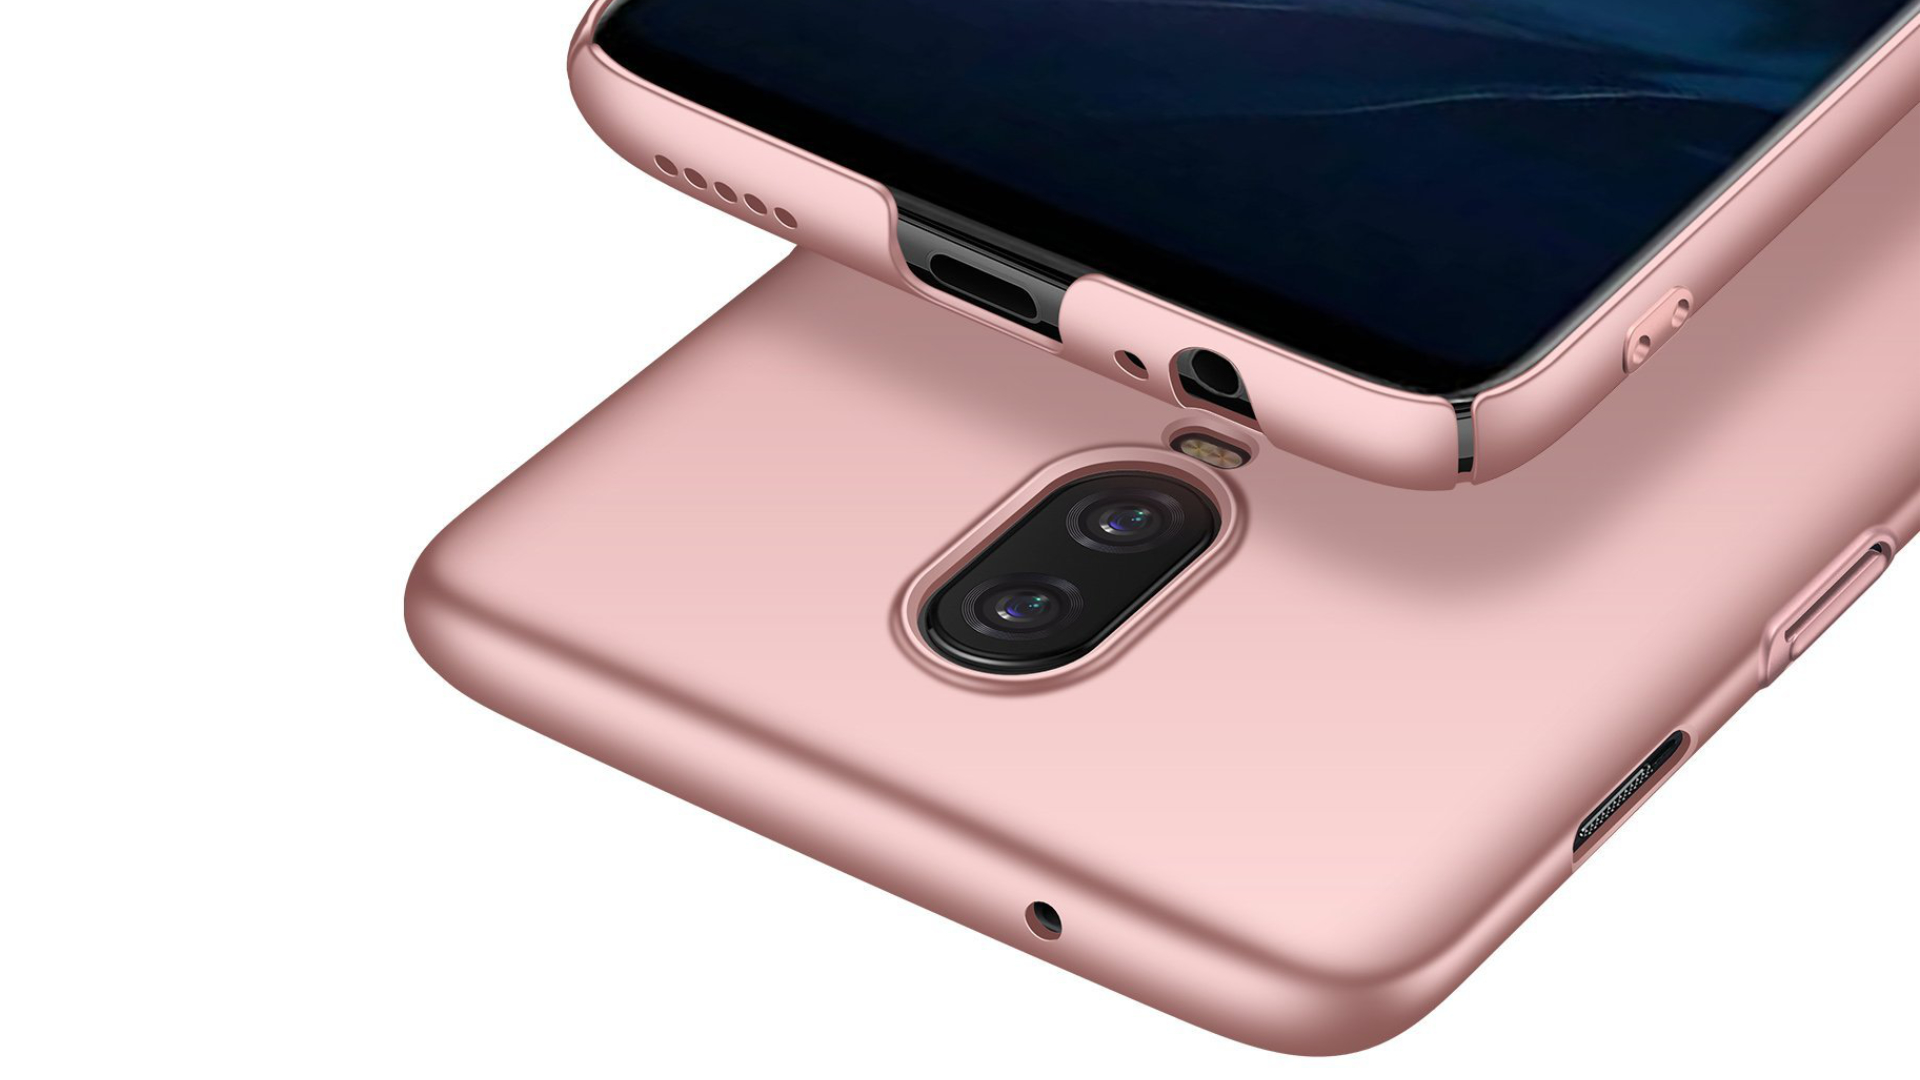 The case also comes with a wrist strap in case you want to keep it strapped to your wrist but out of your hand.